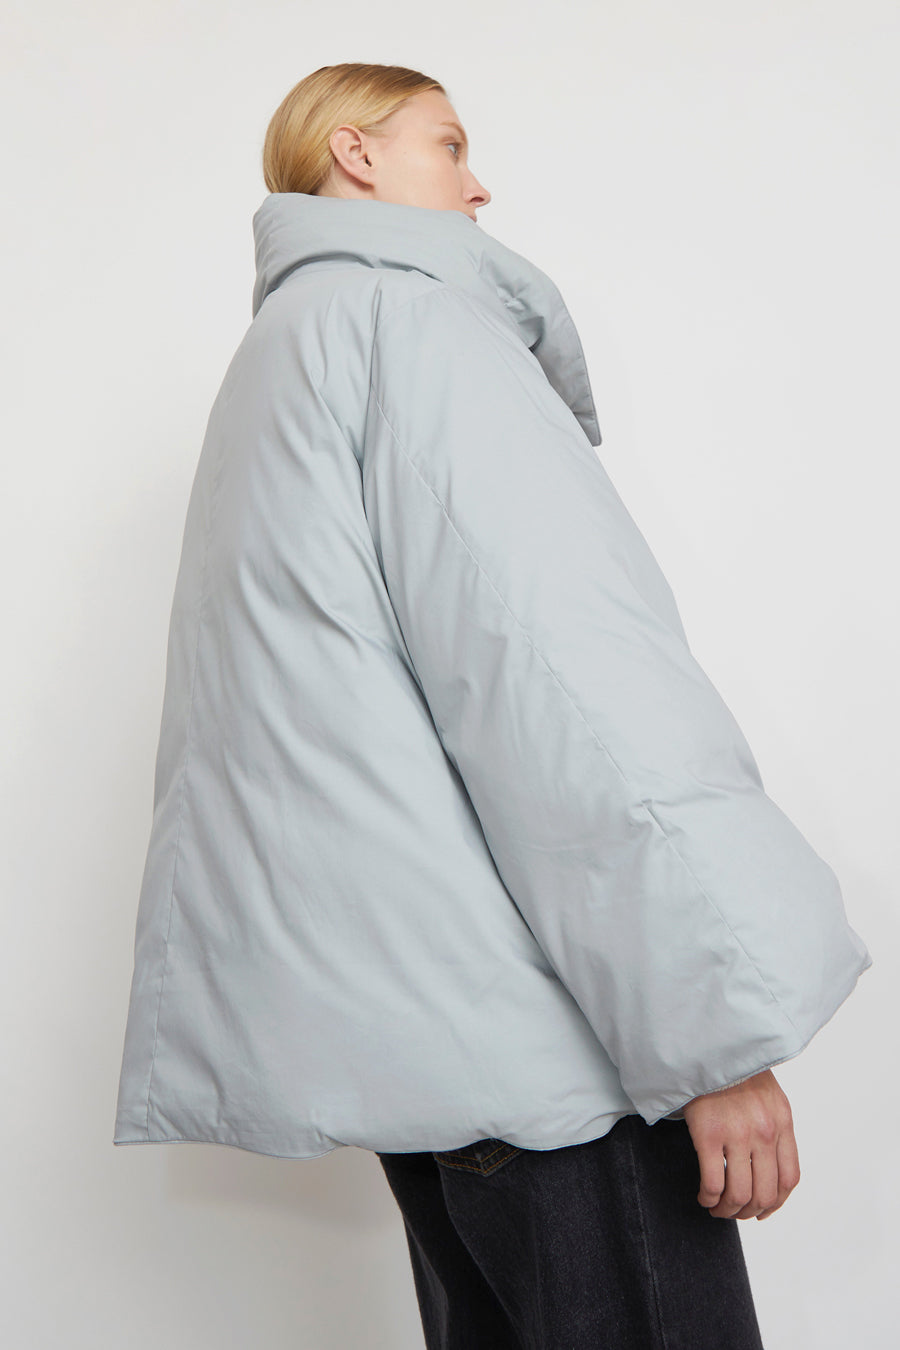 YearOne Happy Jacket with Detachable Hood in Cloud